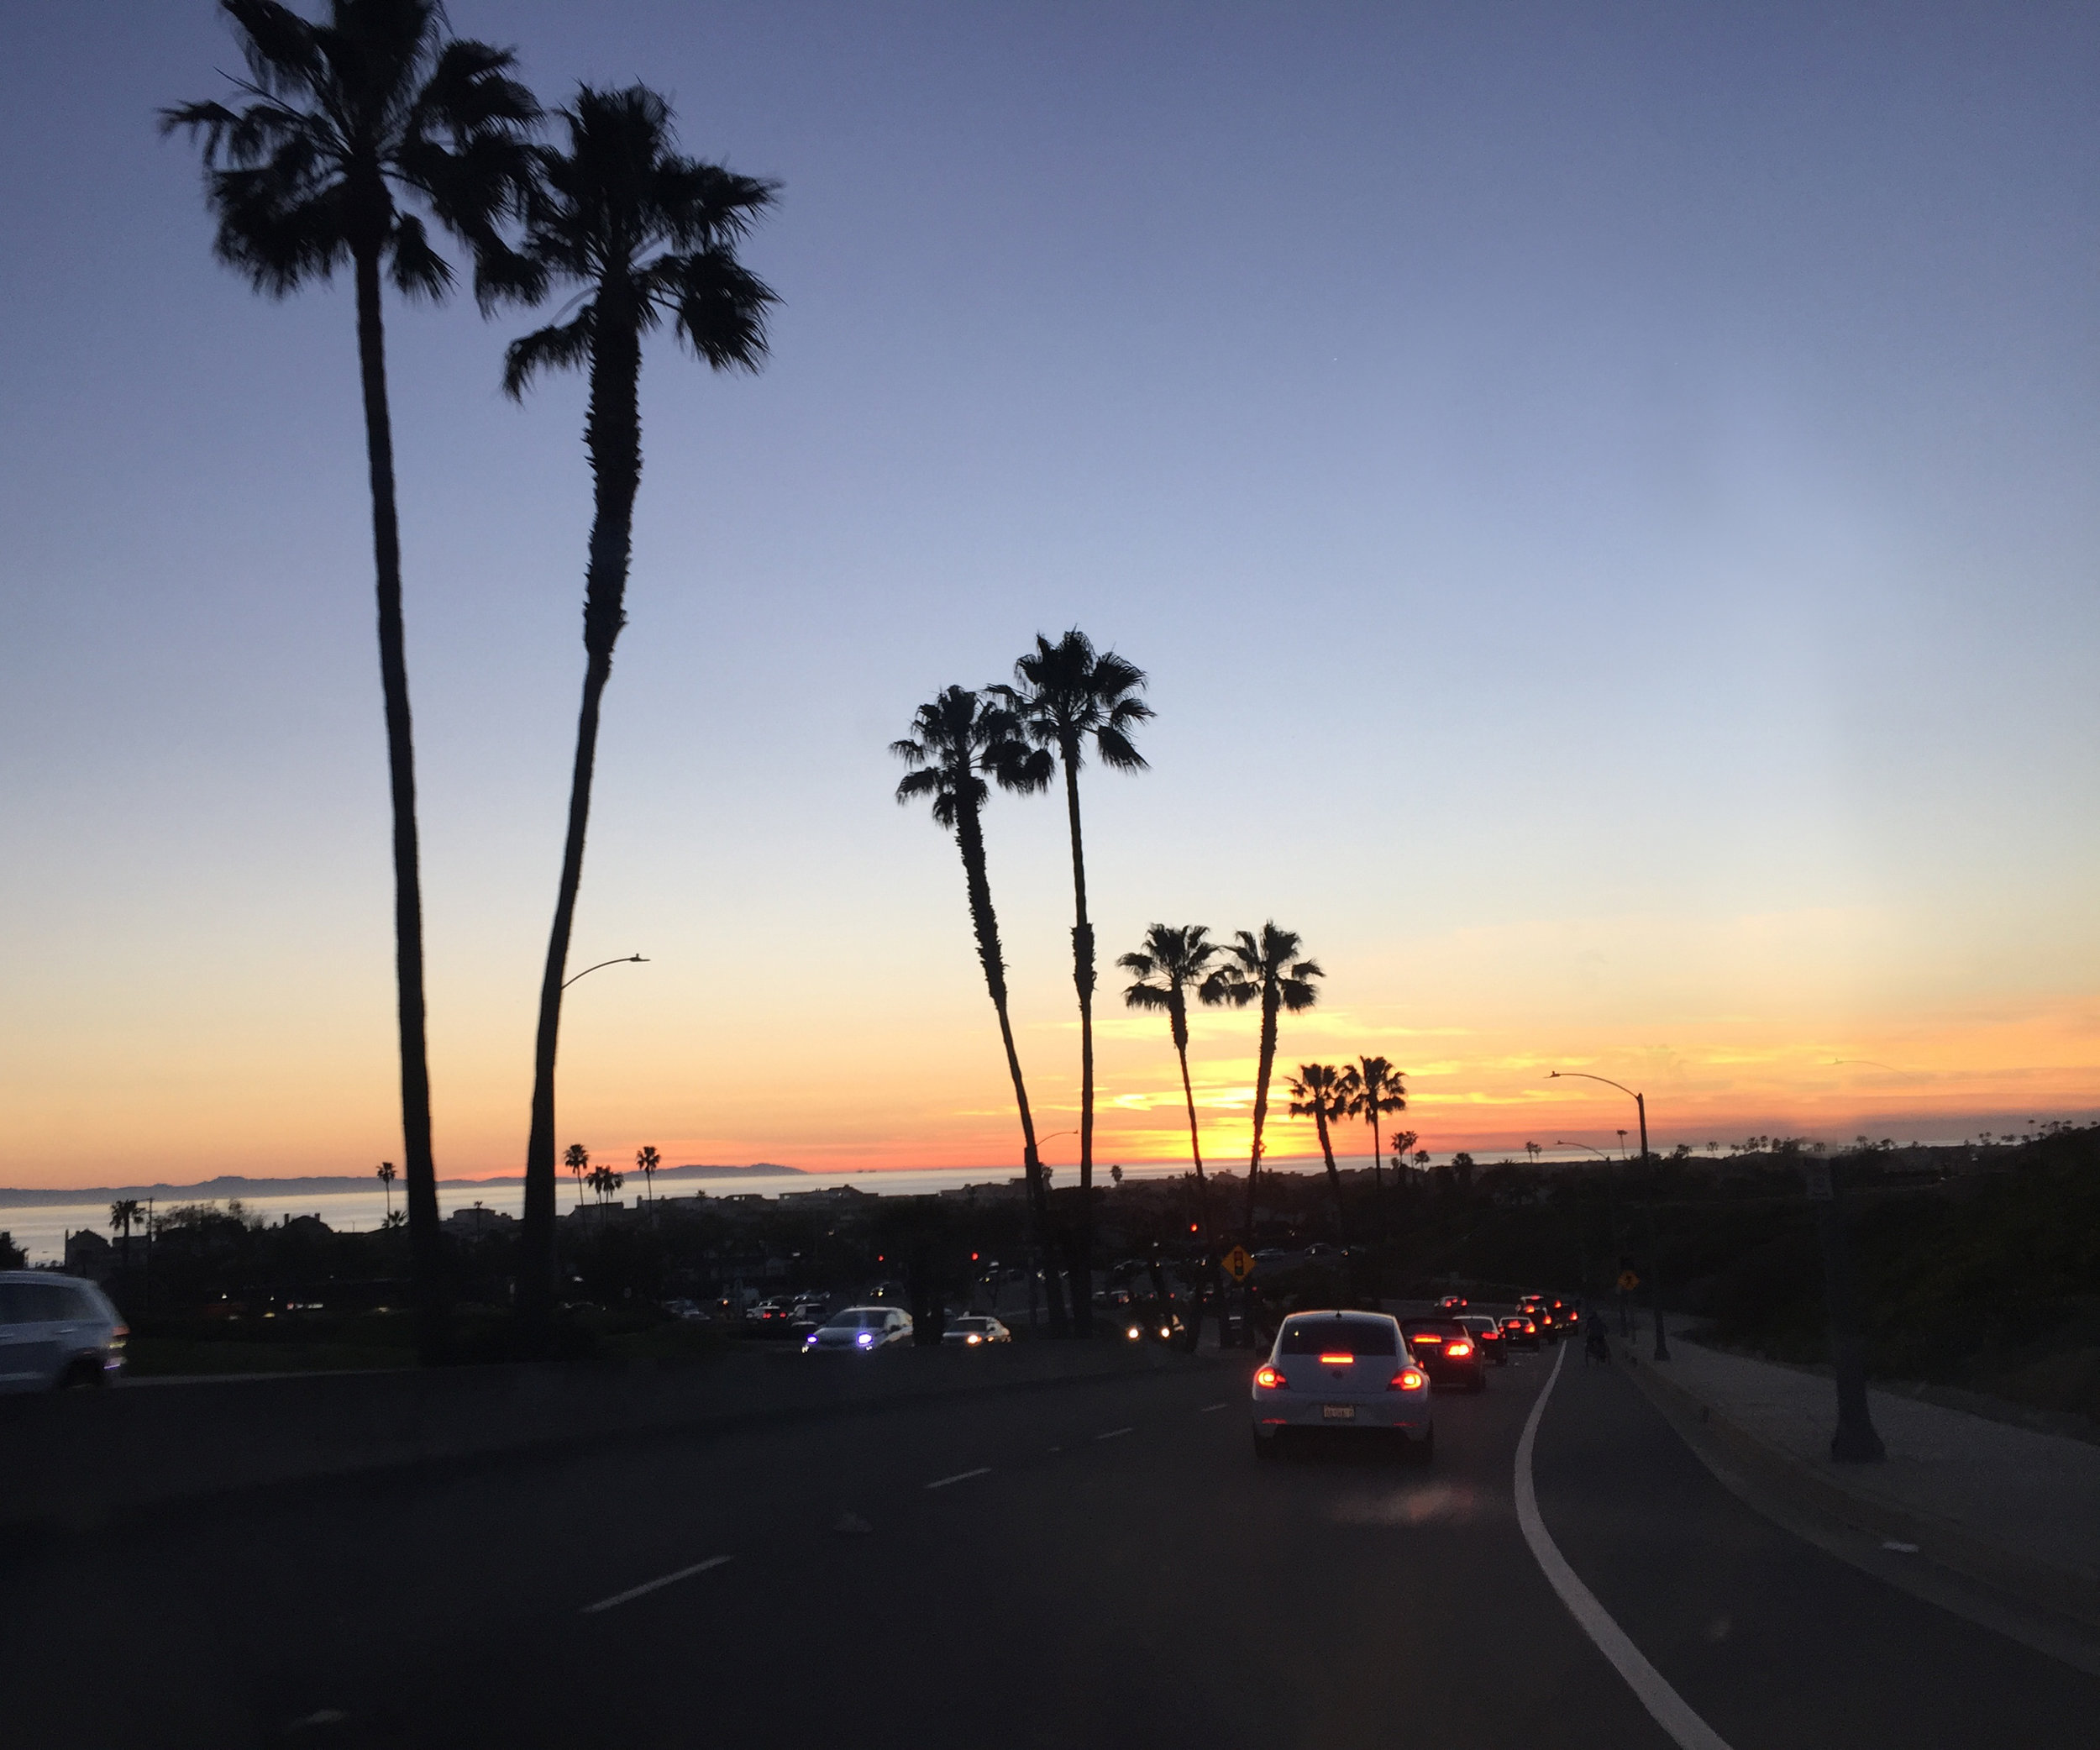 Nothing like a sunset ride home from Triumph Newport!